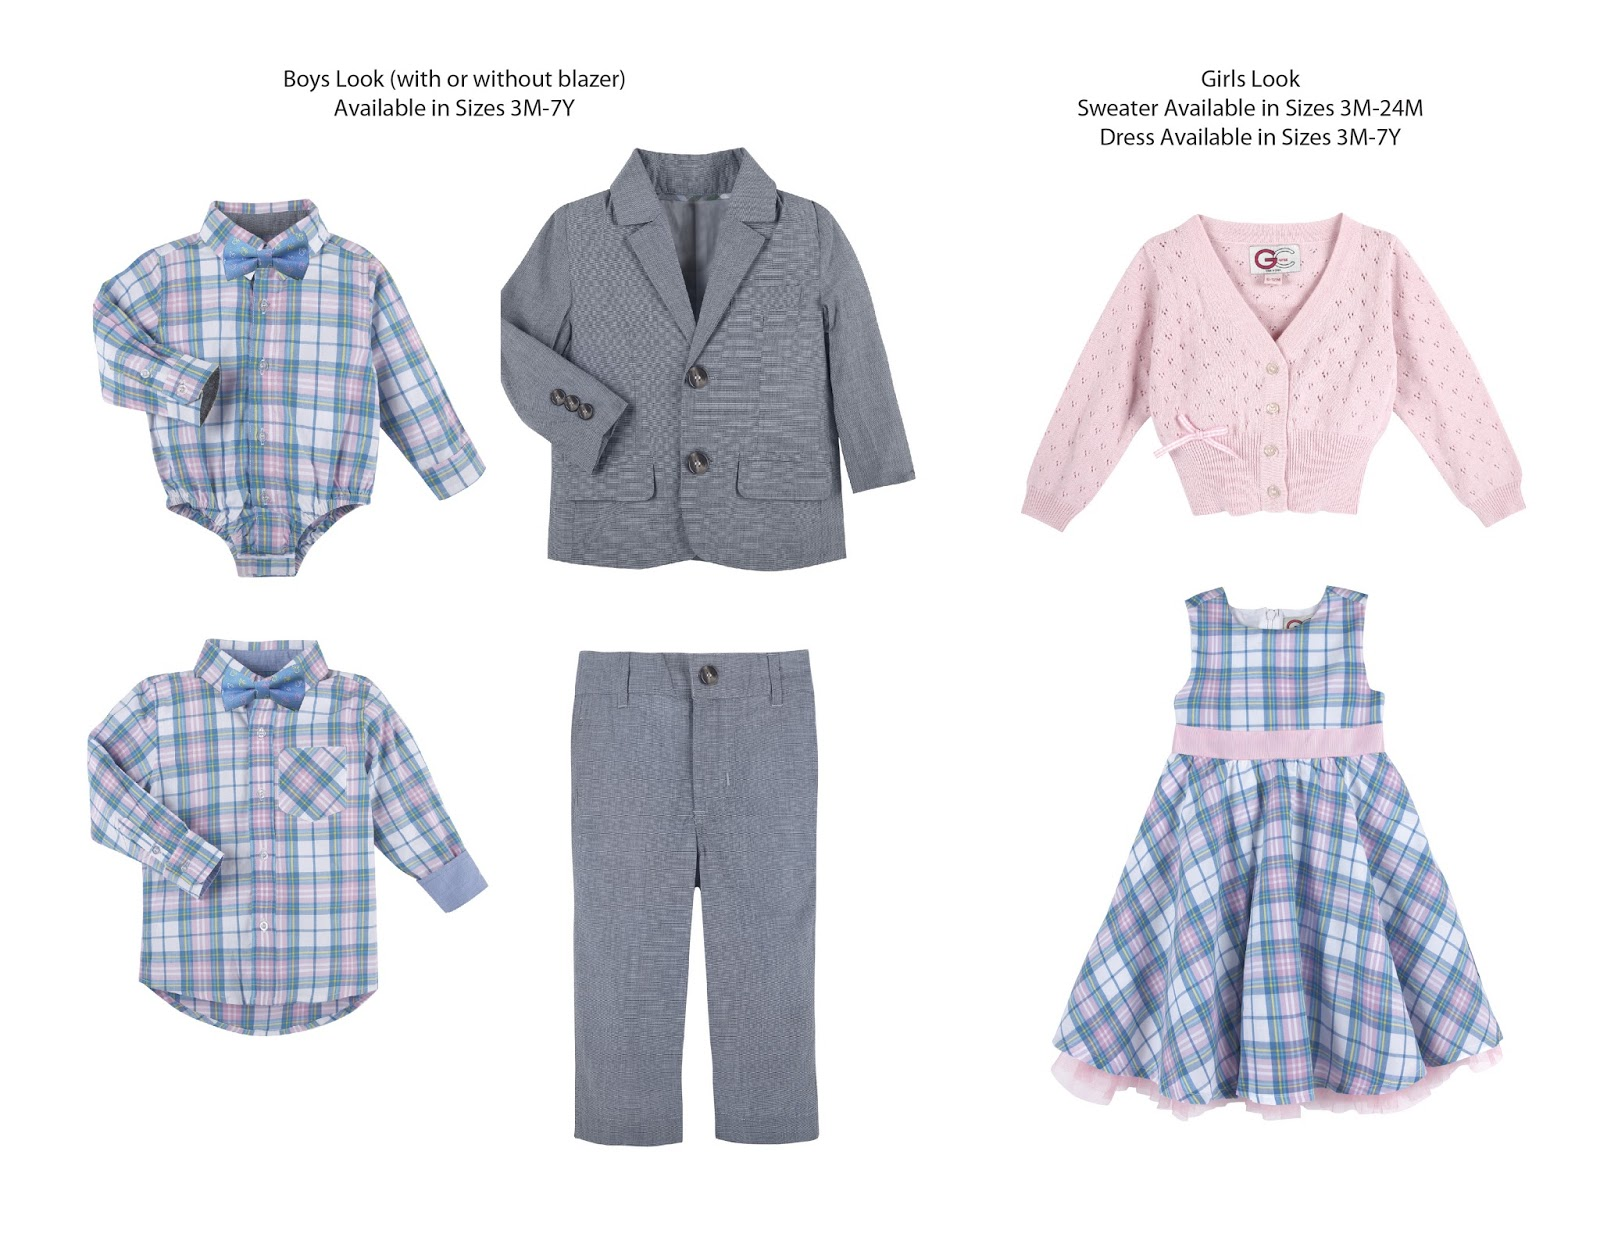 Cute Outfits for Easter at Tar from G Cutee Mommy s Block Party